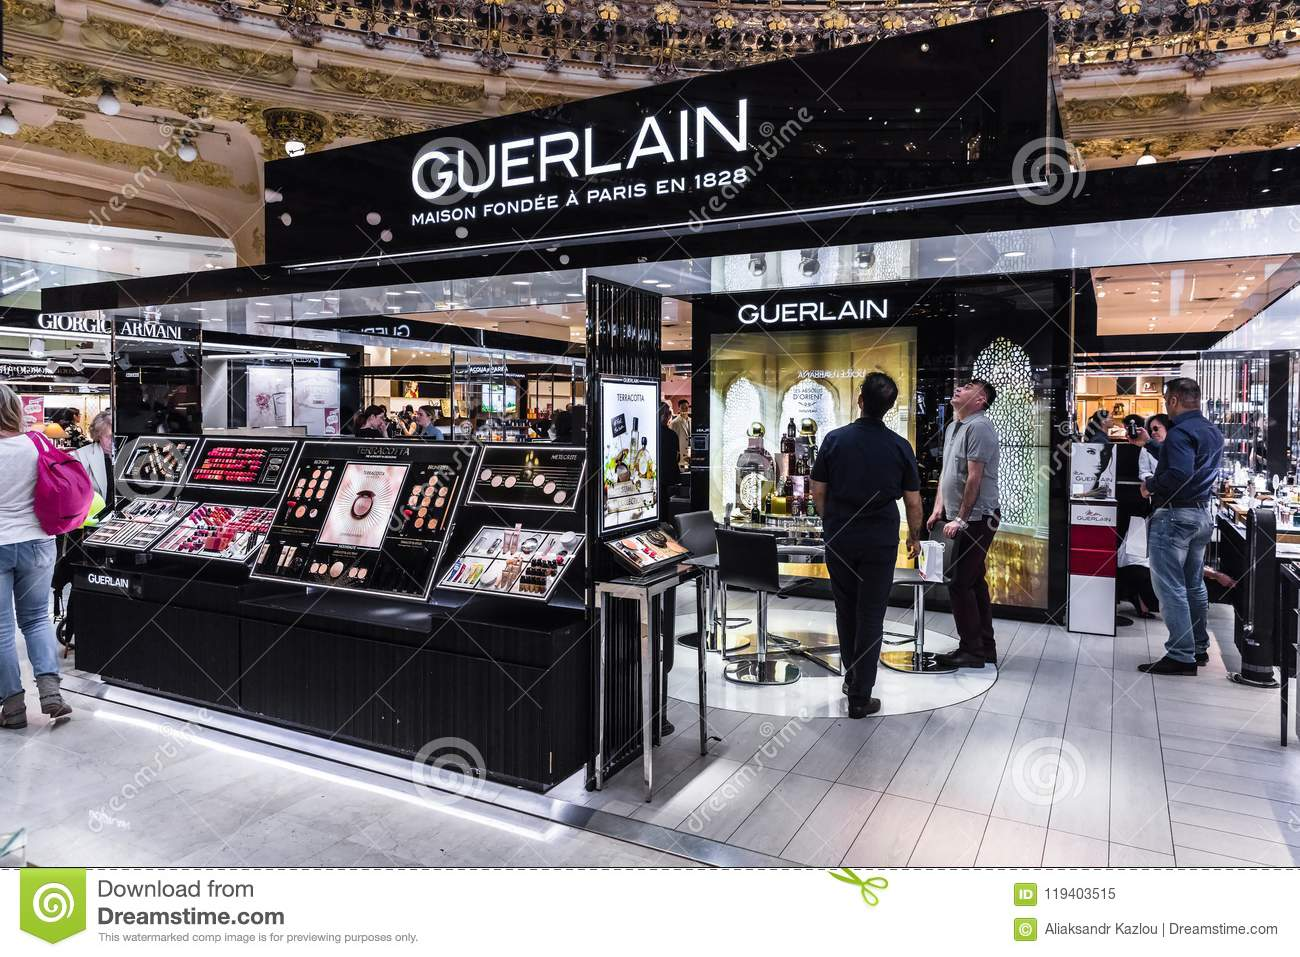 People Shop Galeries Lafayette The Guerlain Section In UMjqLSzpGV